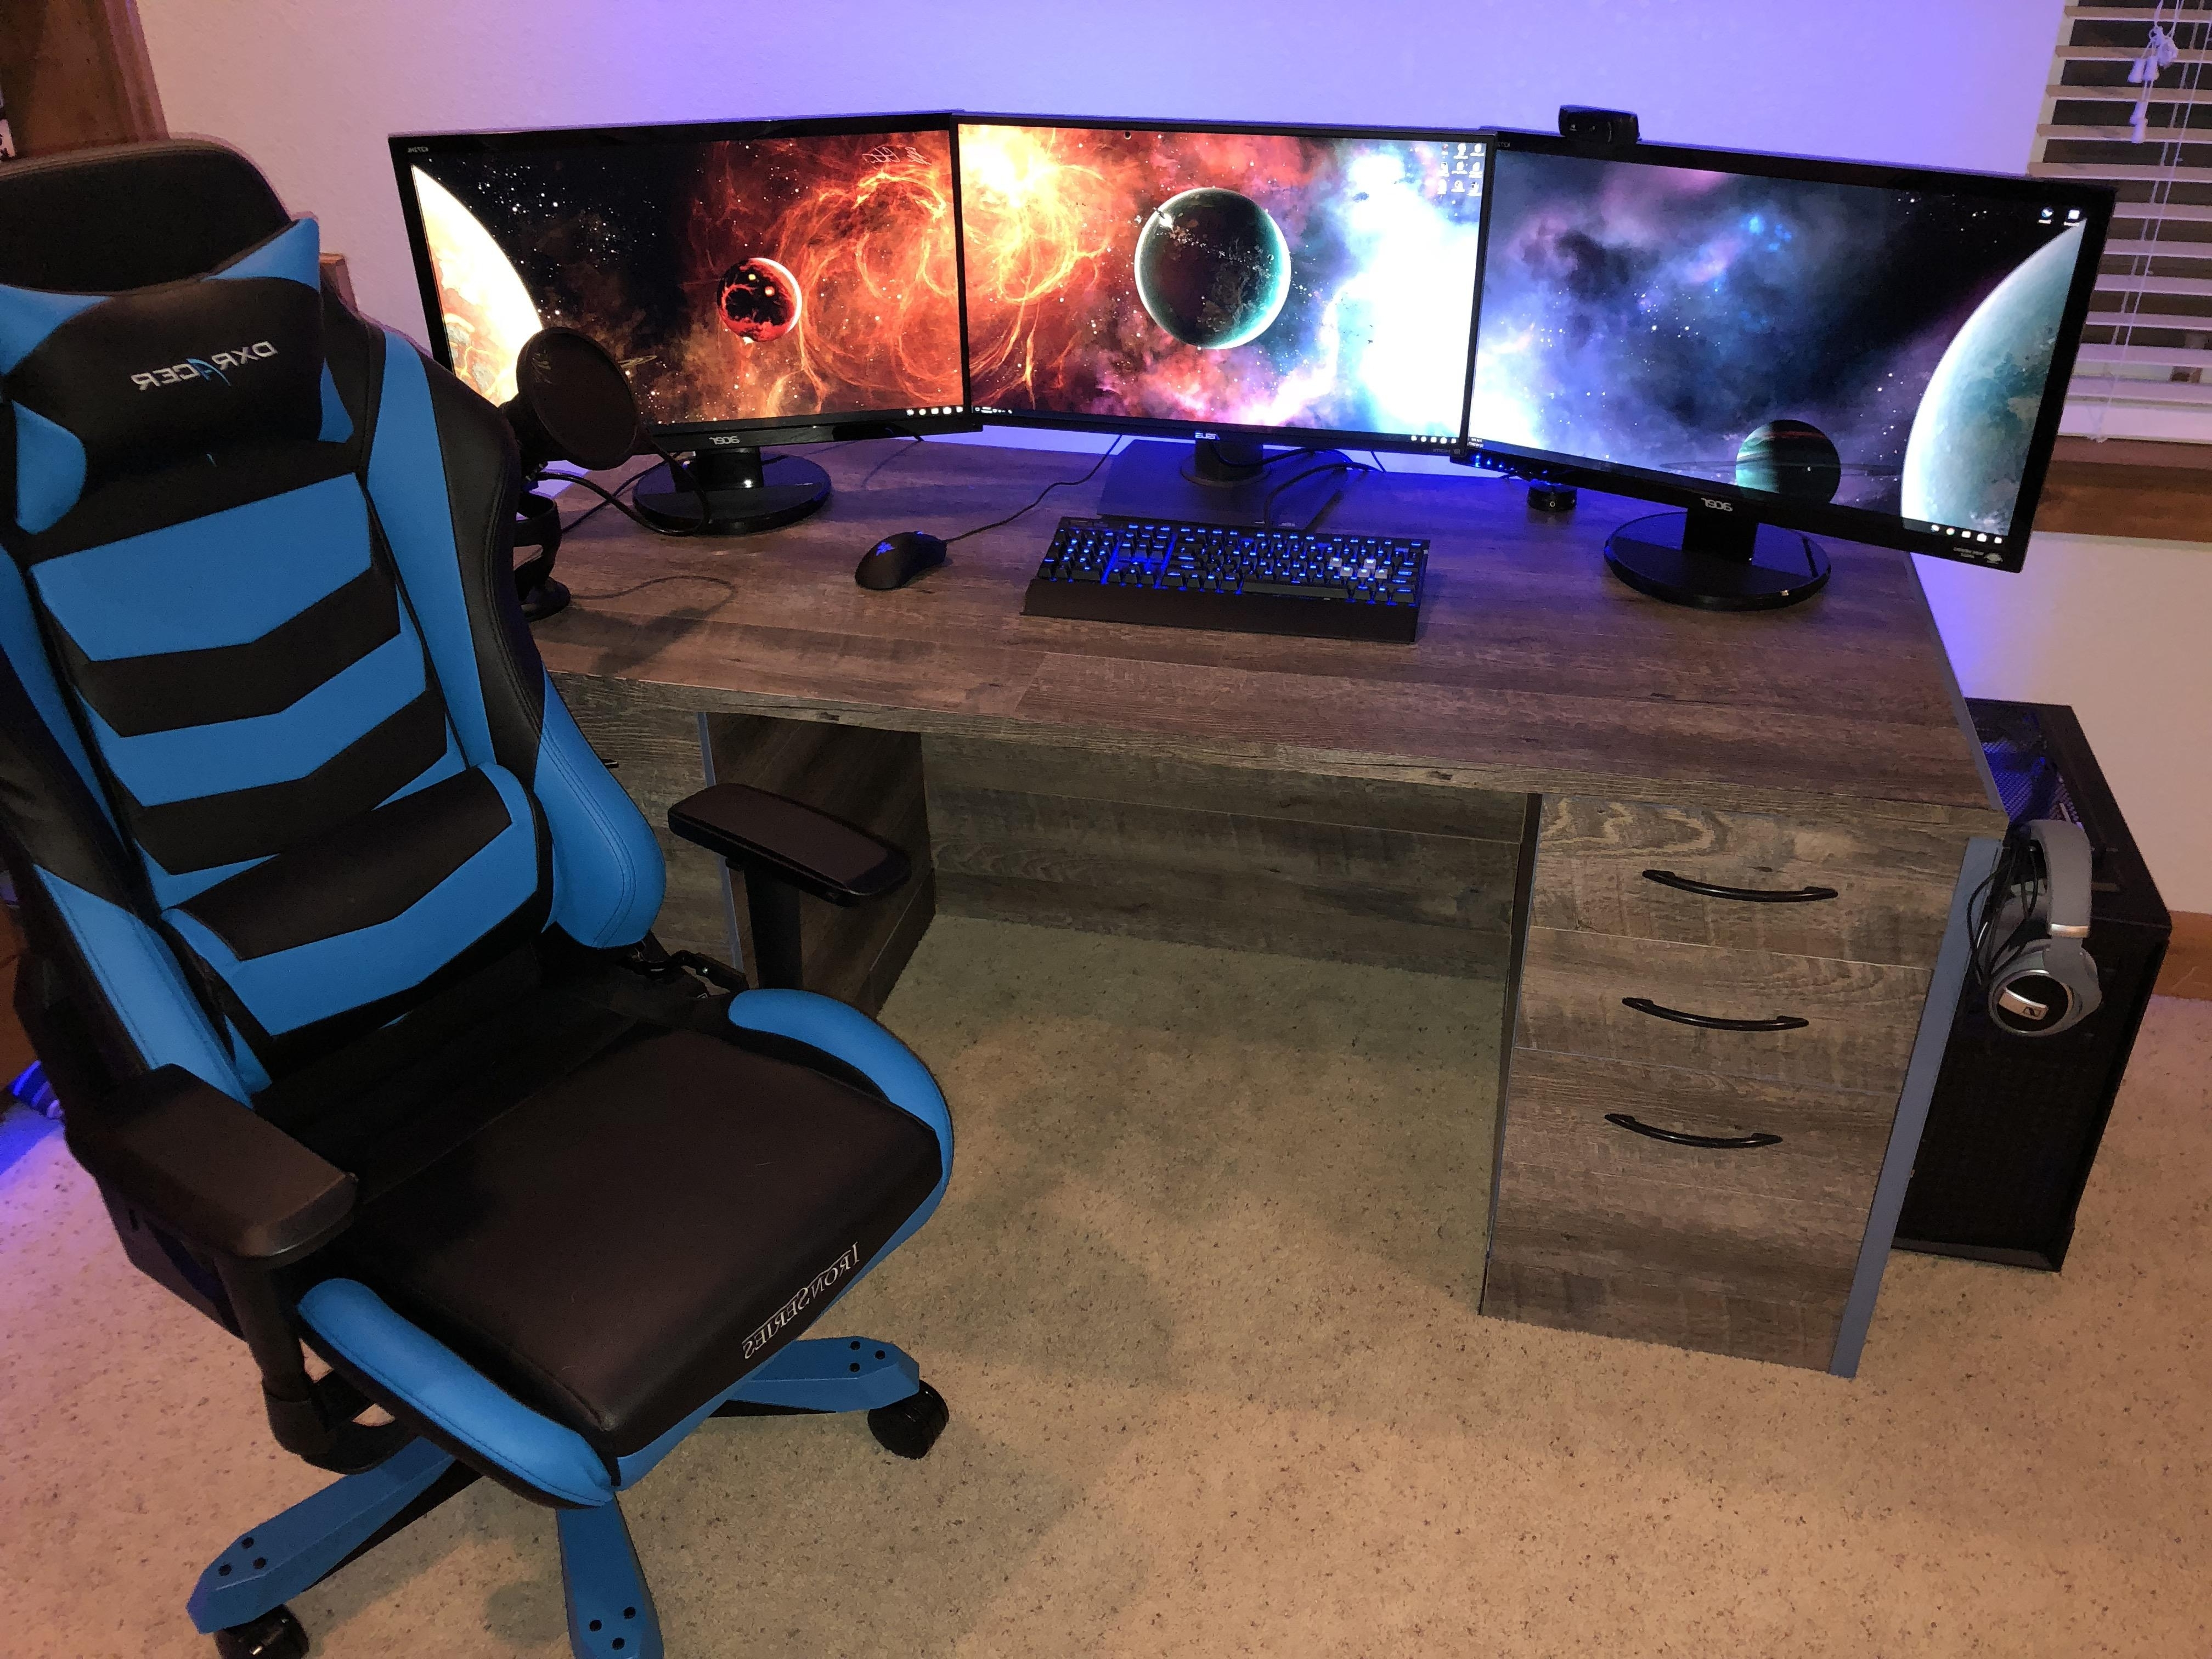 New Personalized Desk To Go With My 3 Monitor Blue Accent Setup Throughout Favorite Computer Desks For 3 Monitors (View 14 of 20)